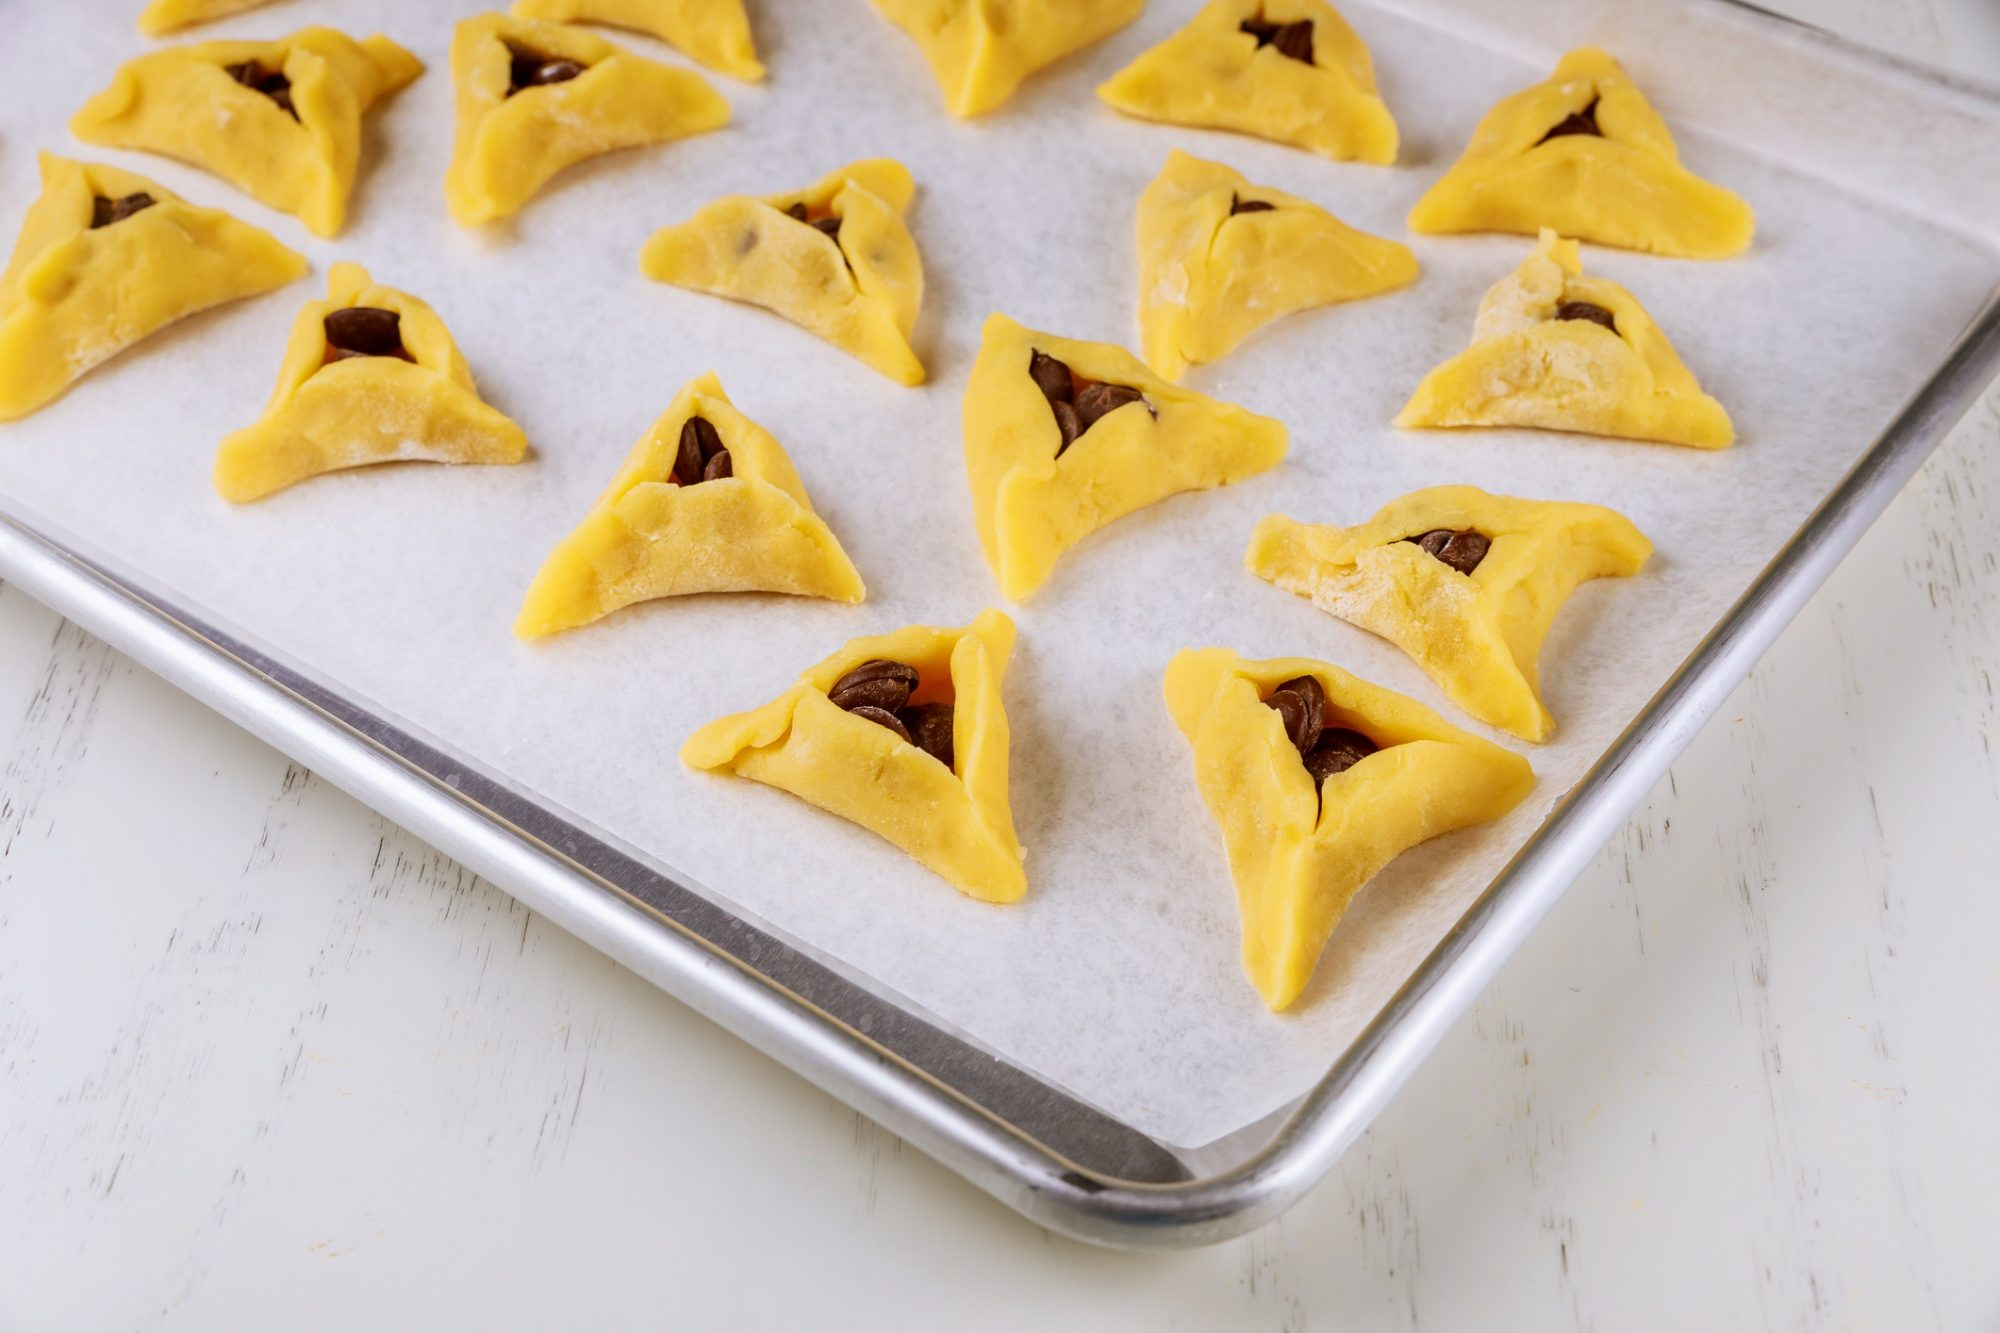 hamantaschen on a cooking sheet ready to bake